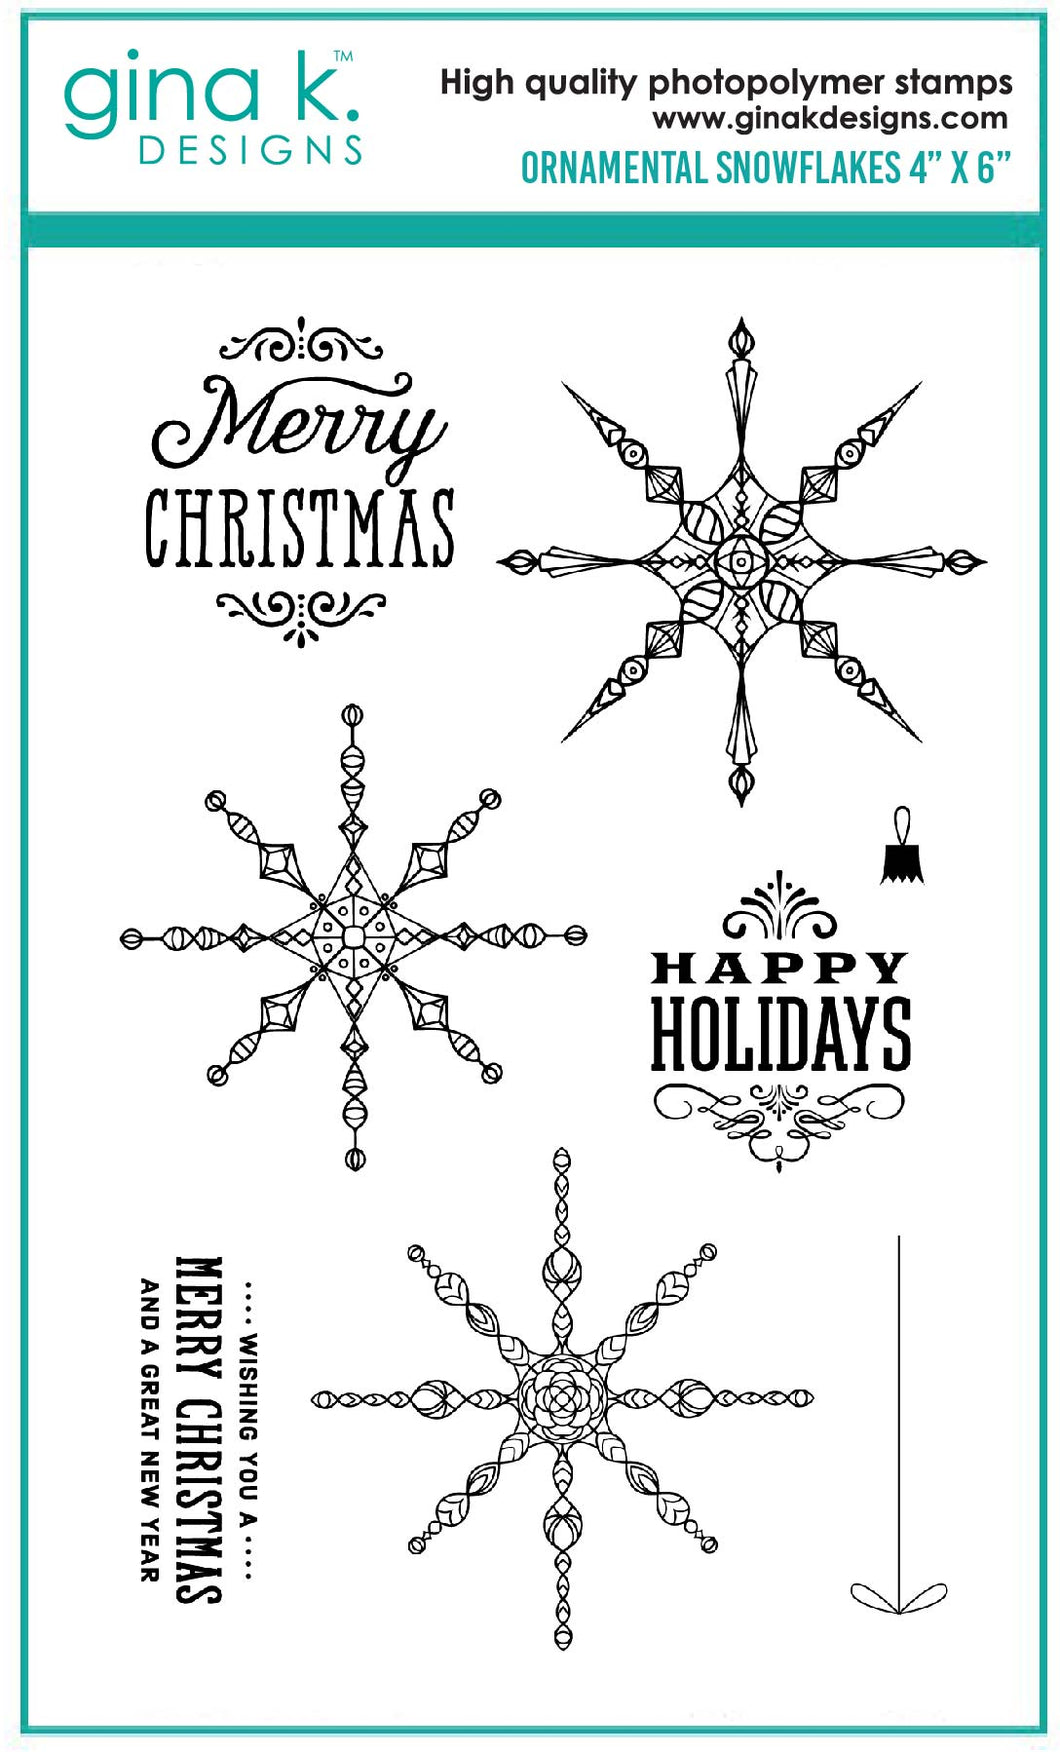 DIRECT BUY GINA K DESIGNS LARGE STAMP SET ORNAMENTAL SNOWFLAKES (HAS TO BE ORDERED)